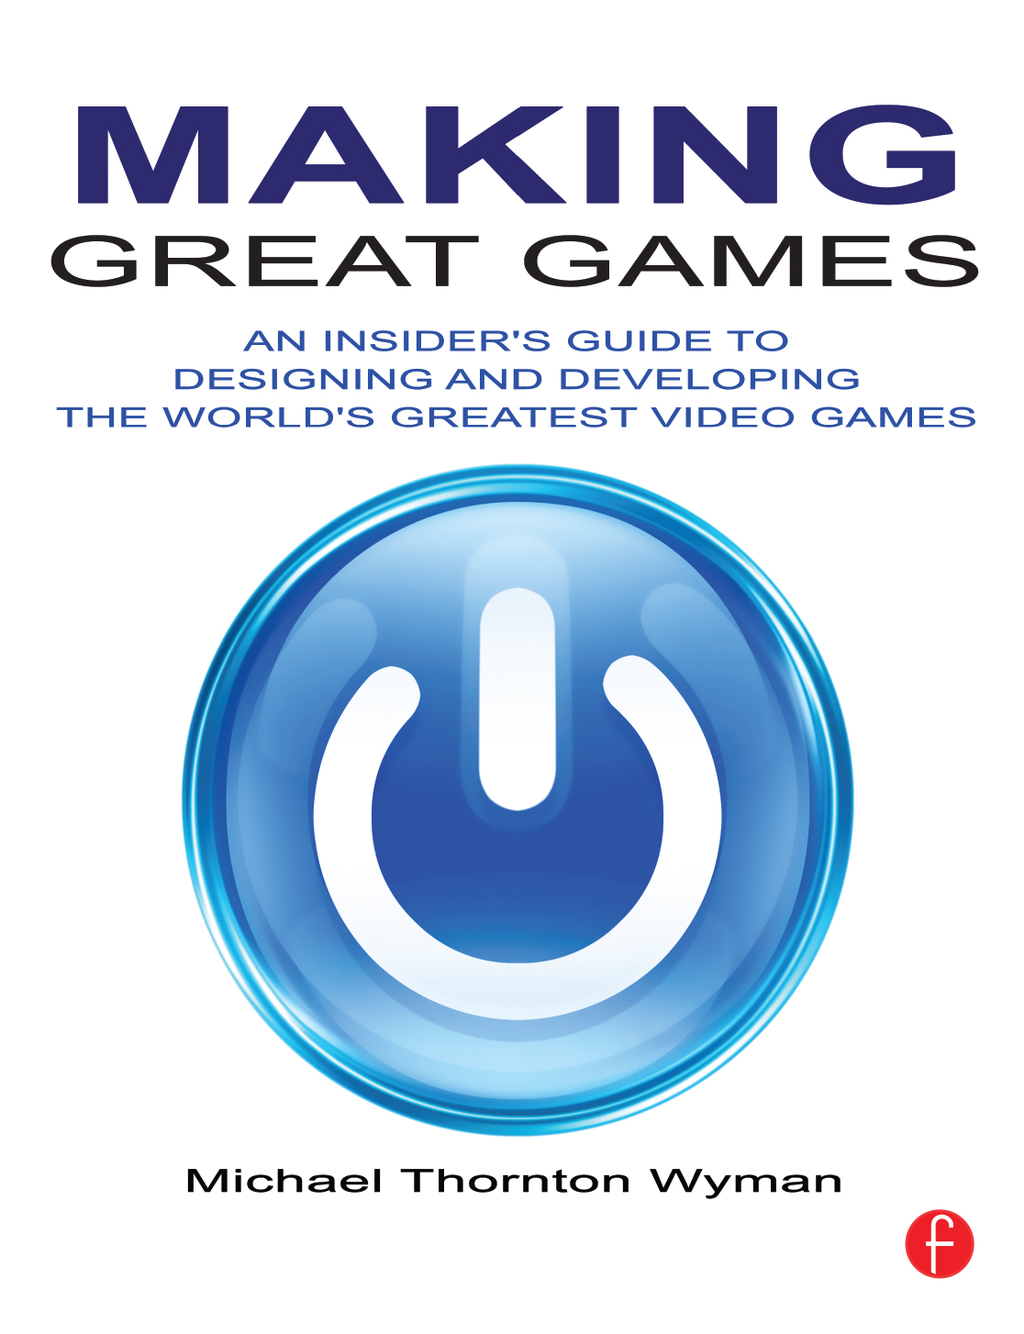 Making Great Games An Insider's Guide to Designing and Developing the World's Greatest Games